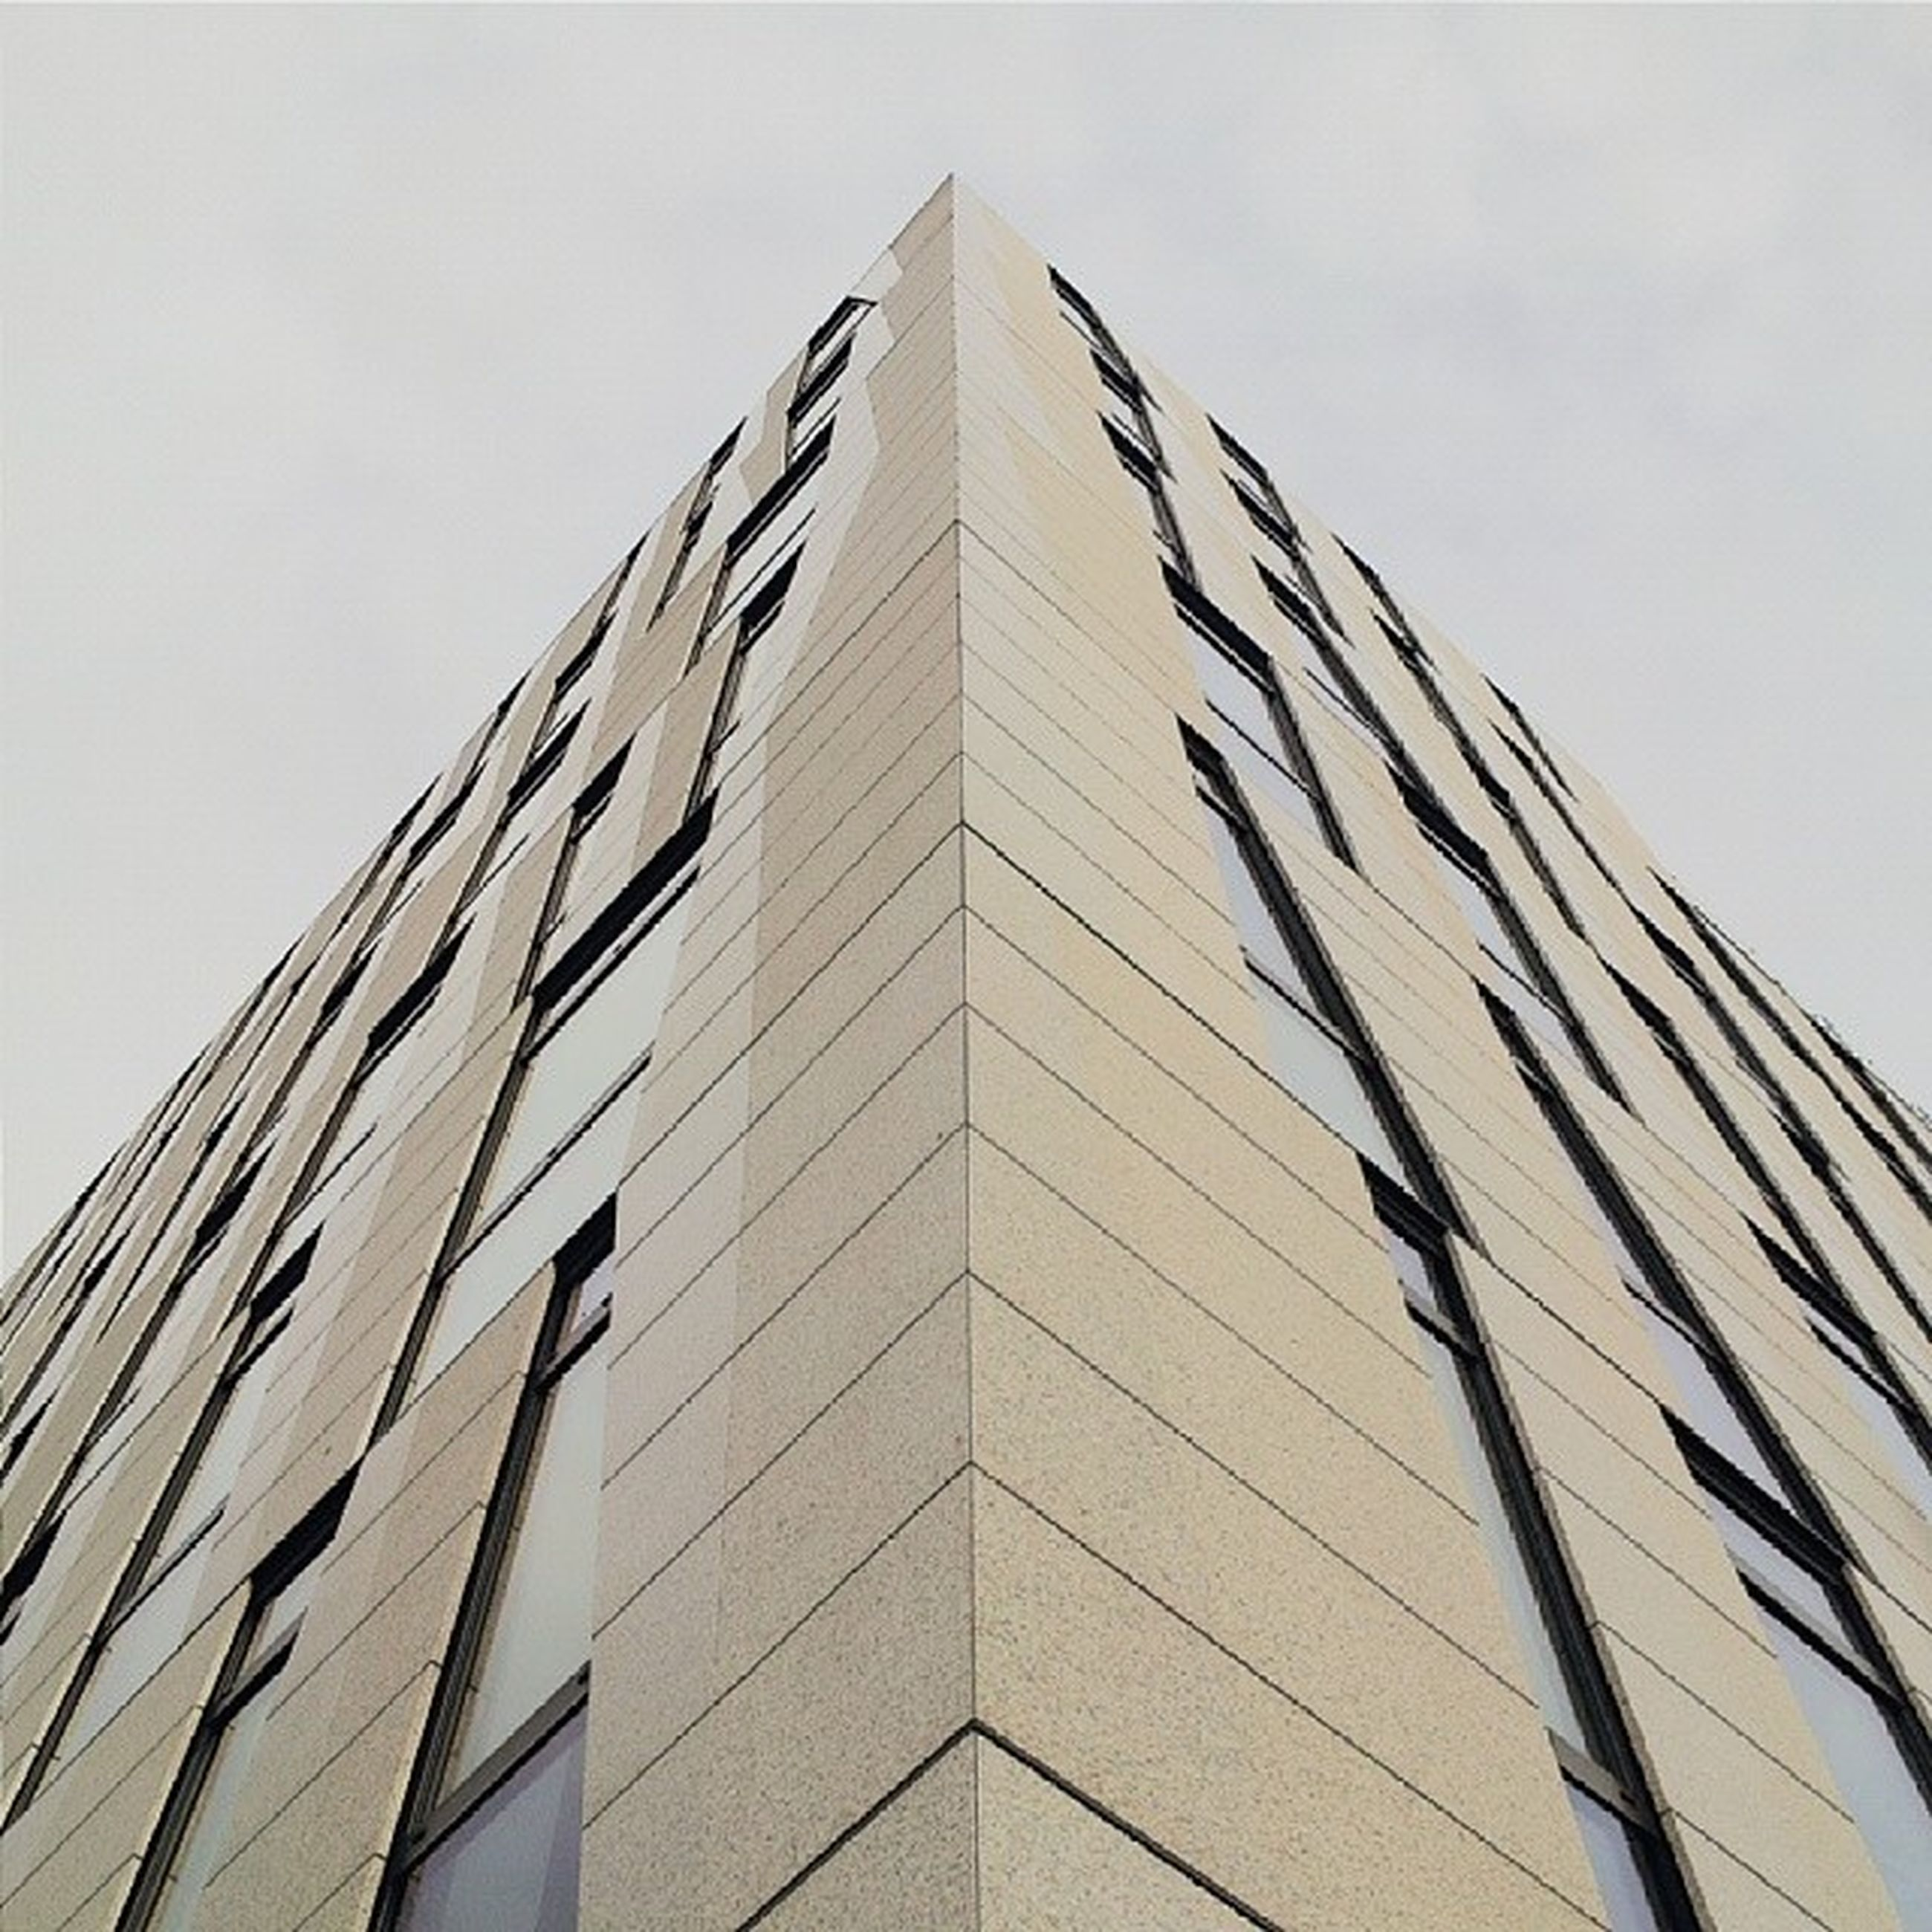 architecture, low angle view, building exterior, built structure, tall - high, modern, office building, city, tower, building, skyscraper, window, sky, clear sky, glass - material, tall, day, outdoors, no people, architectural feature